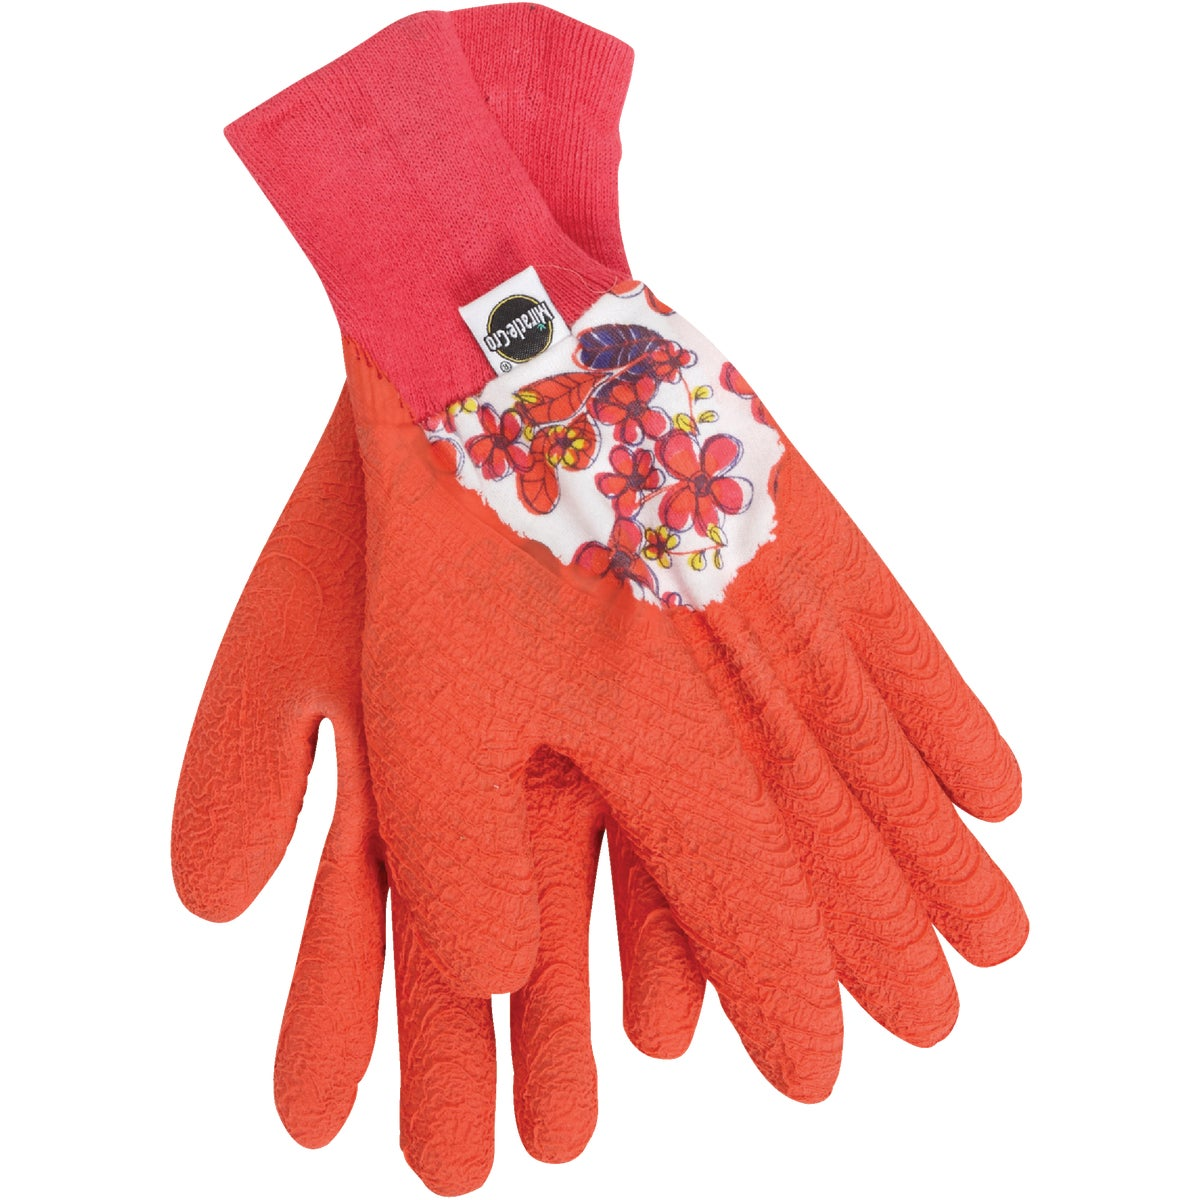 MED LADY LATEX CTD GLOVE - 537M by Wells Lamont